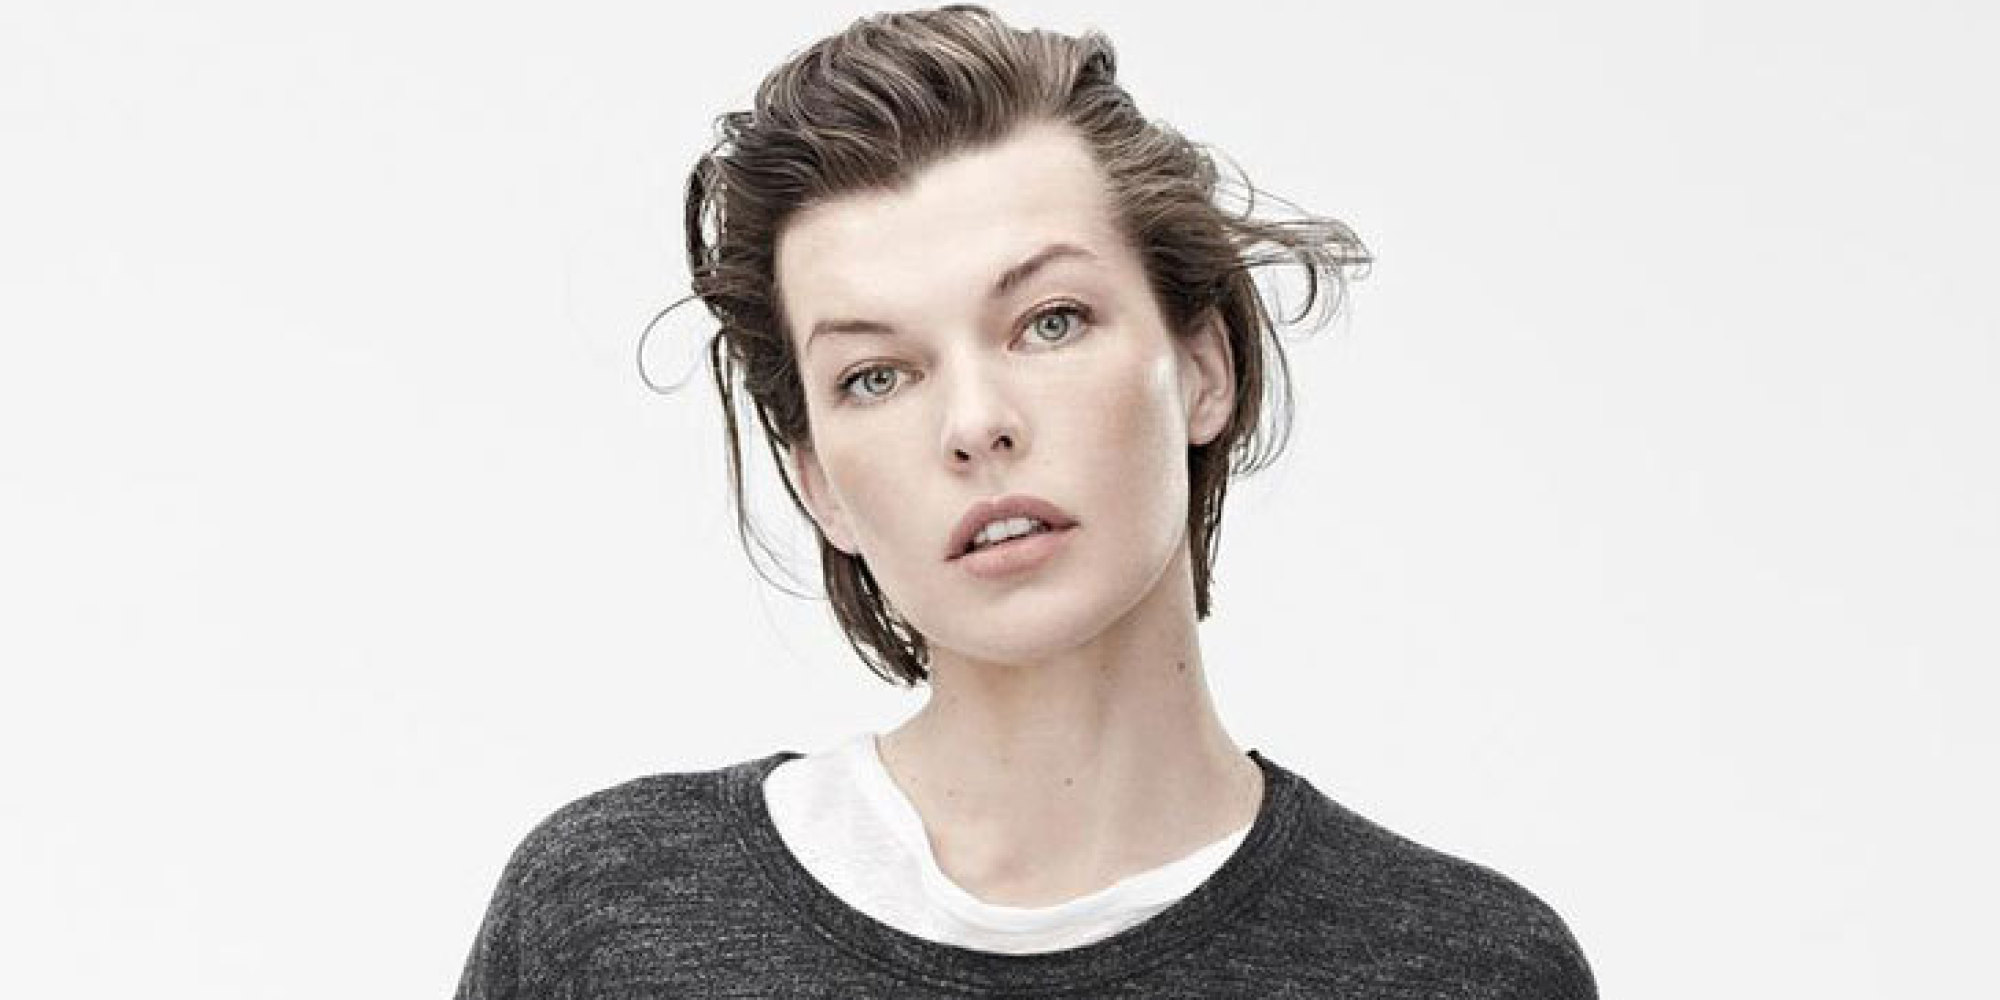 Milla Jovovich Wallpapers High Resolution and Quality Download милла йовович